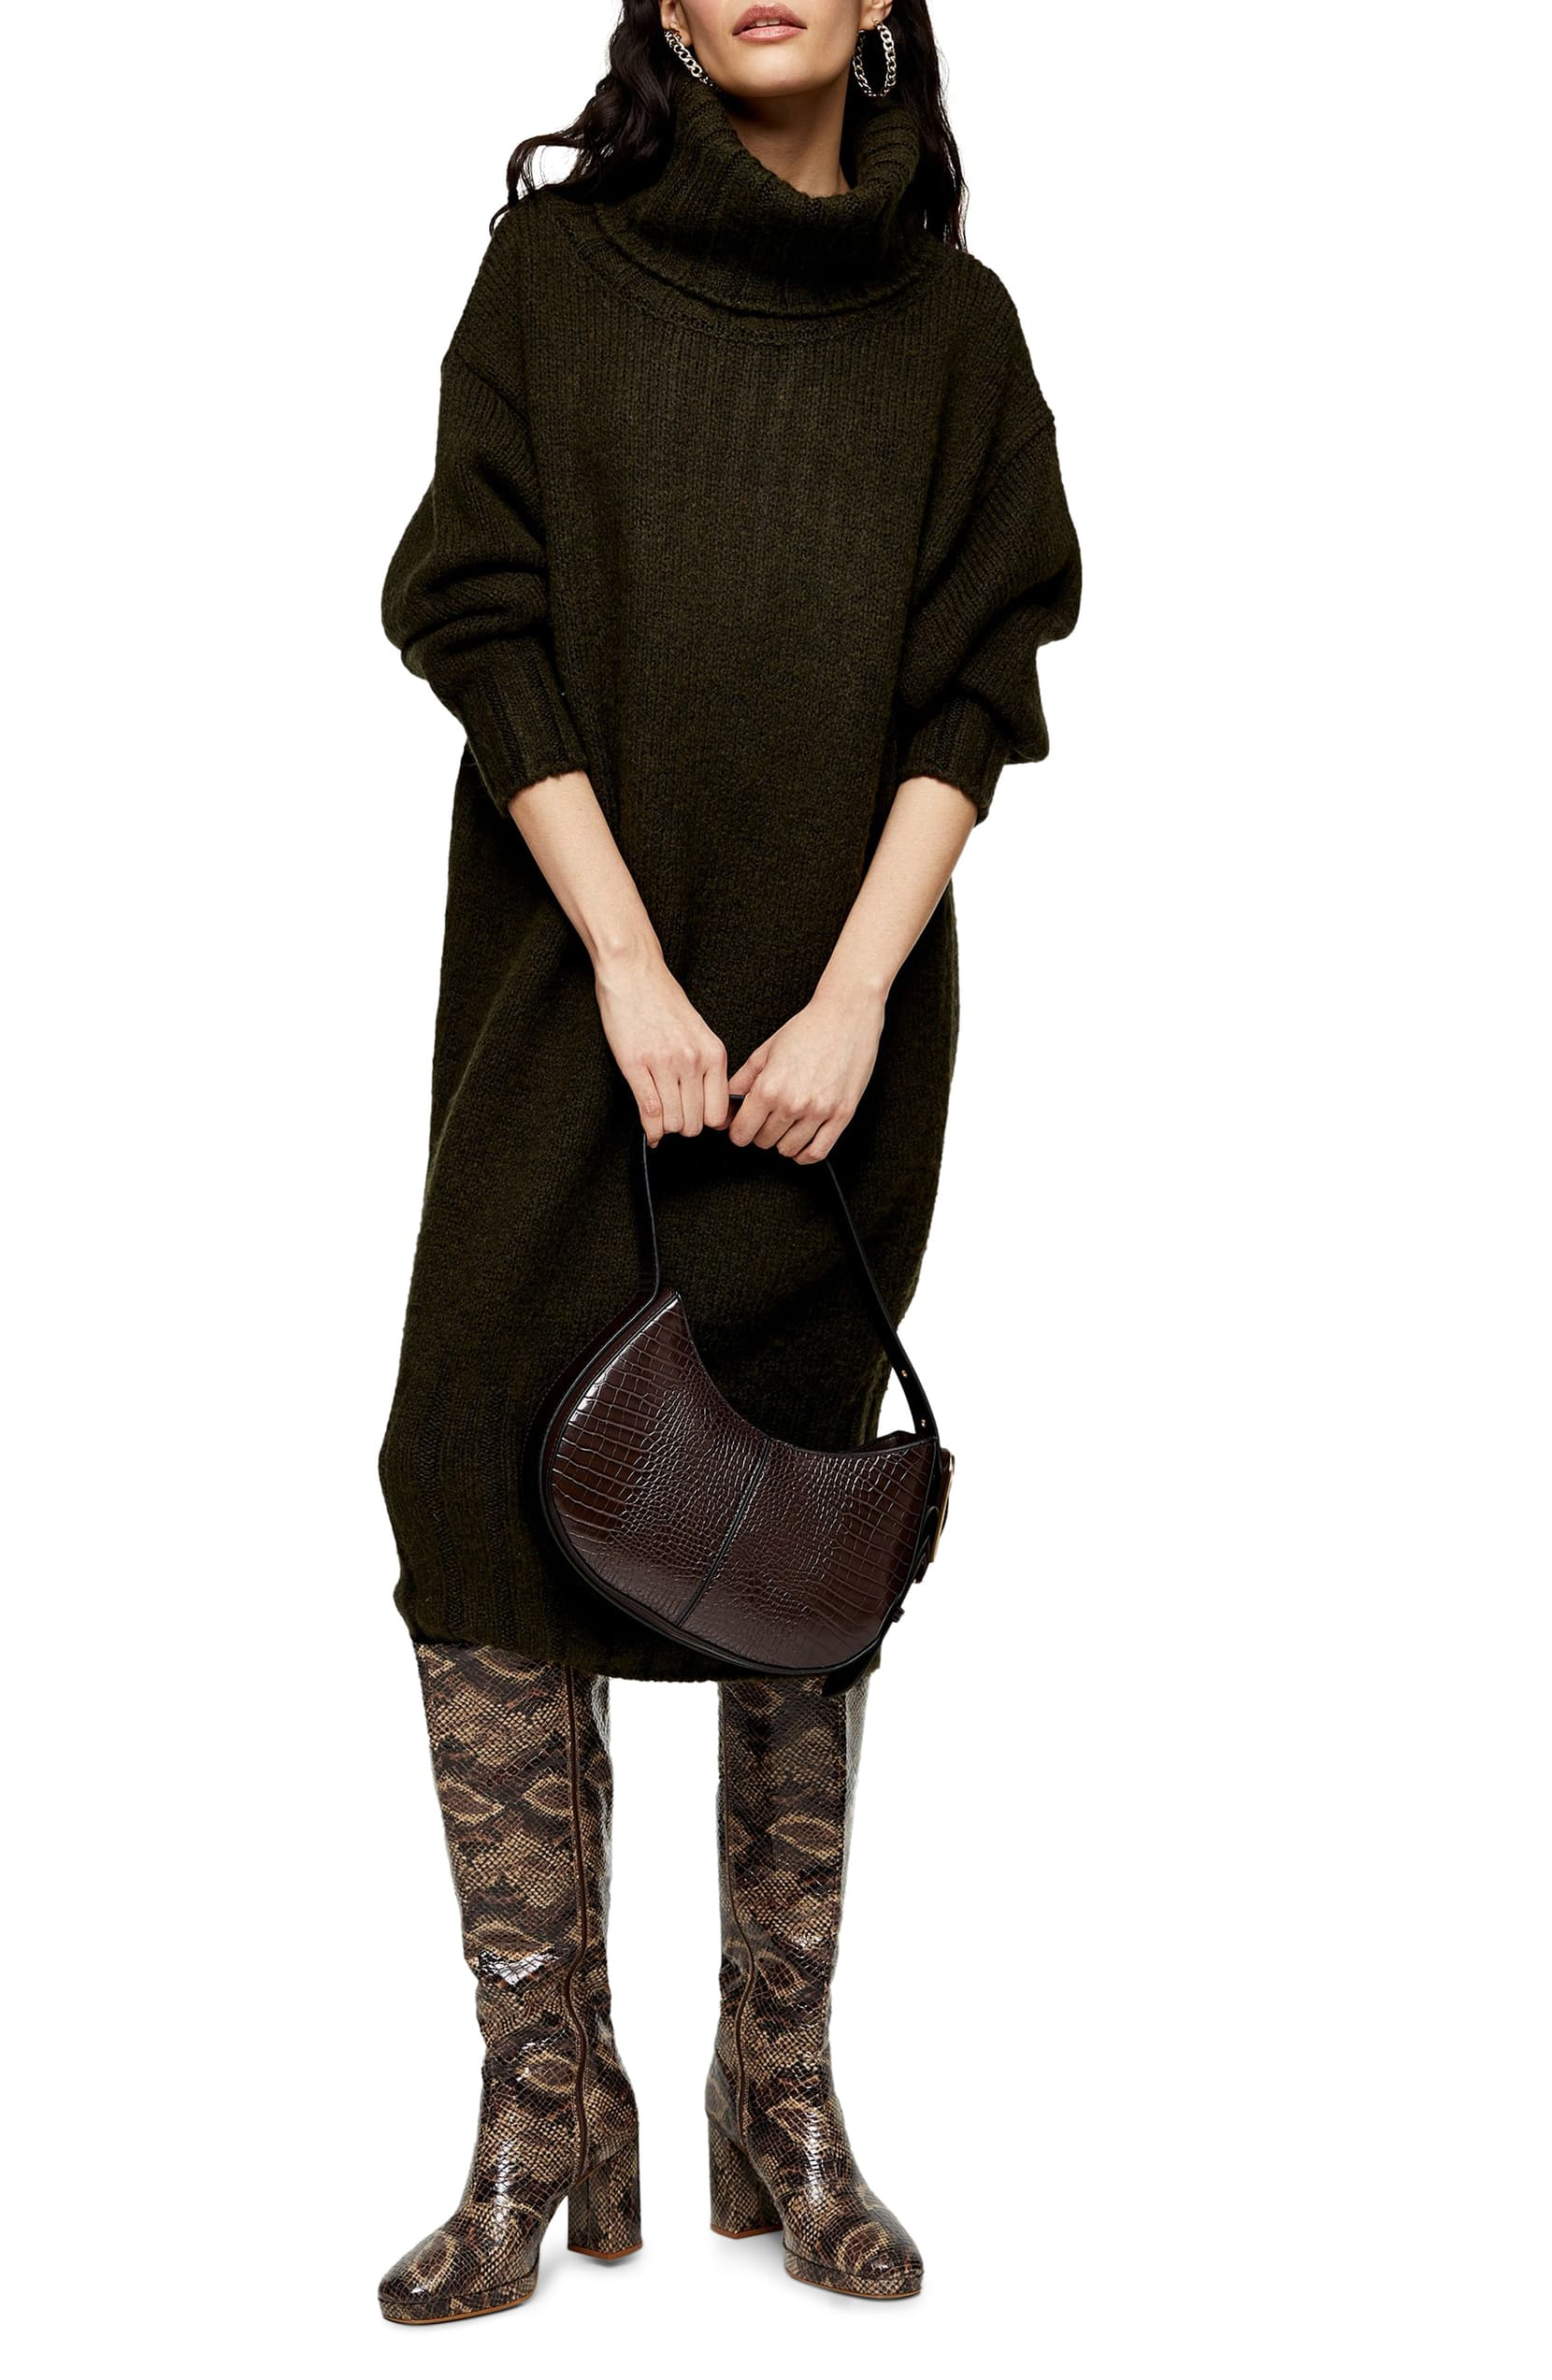 Wrap yourself up in cozy comfort with this big, slouchy sweater-dress with a chunky cowl neck and wide ribbed hem. (Image: Nordstrom){ }